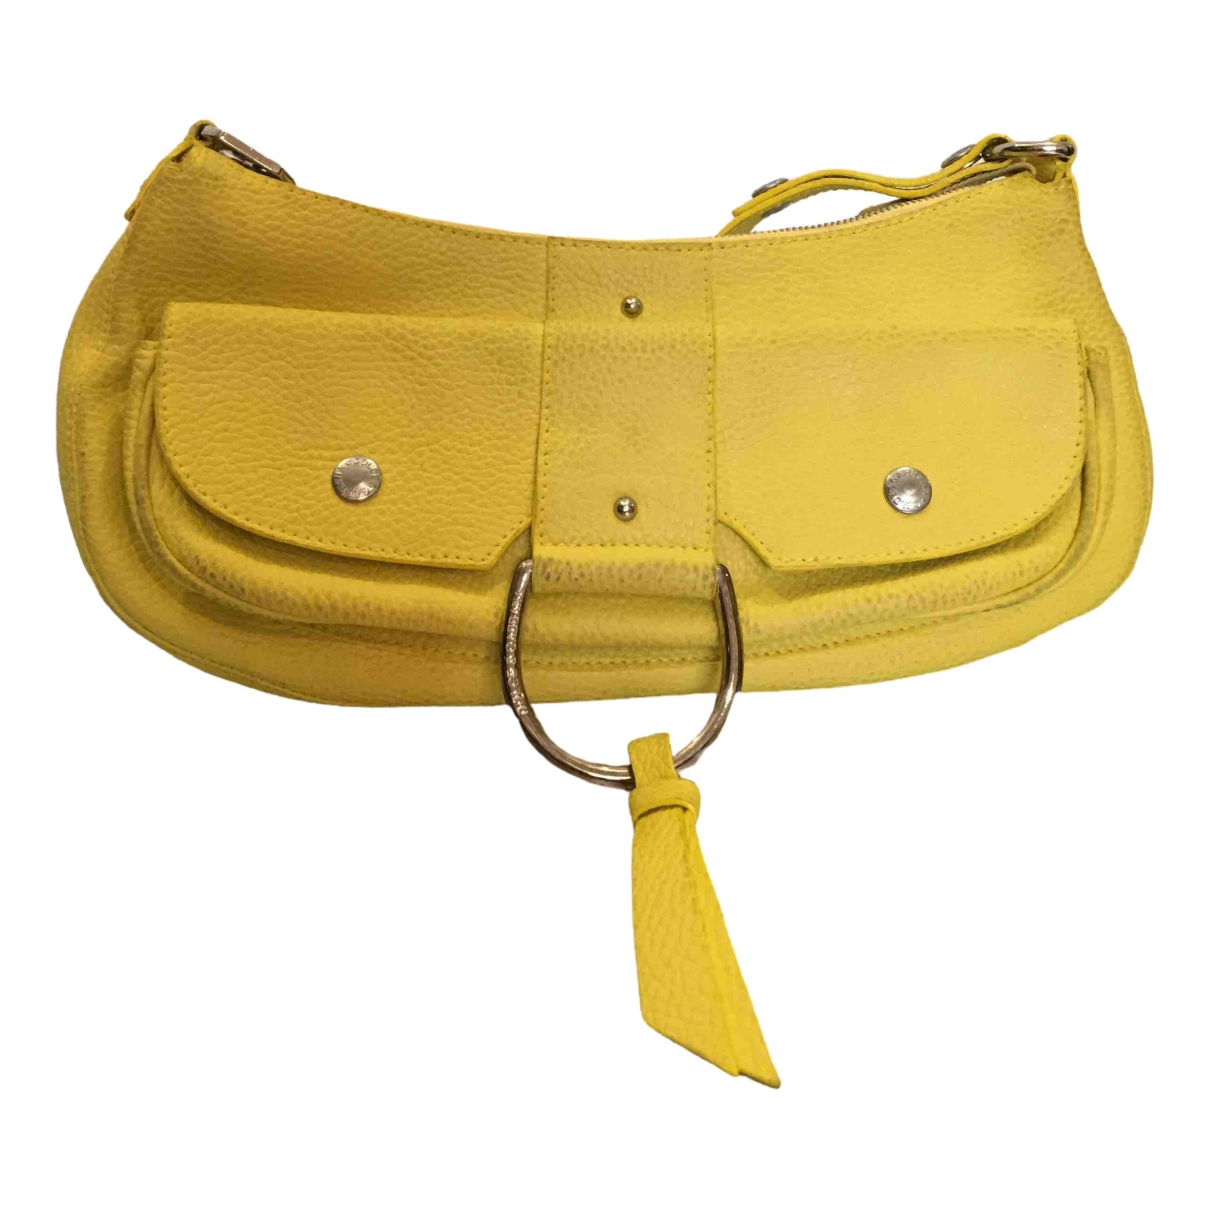 Dolce & Gabbana \N Yellow Leather Clutch bag for Women \N